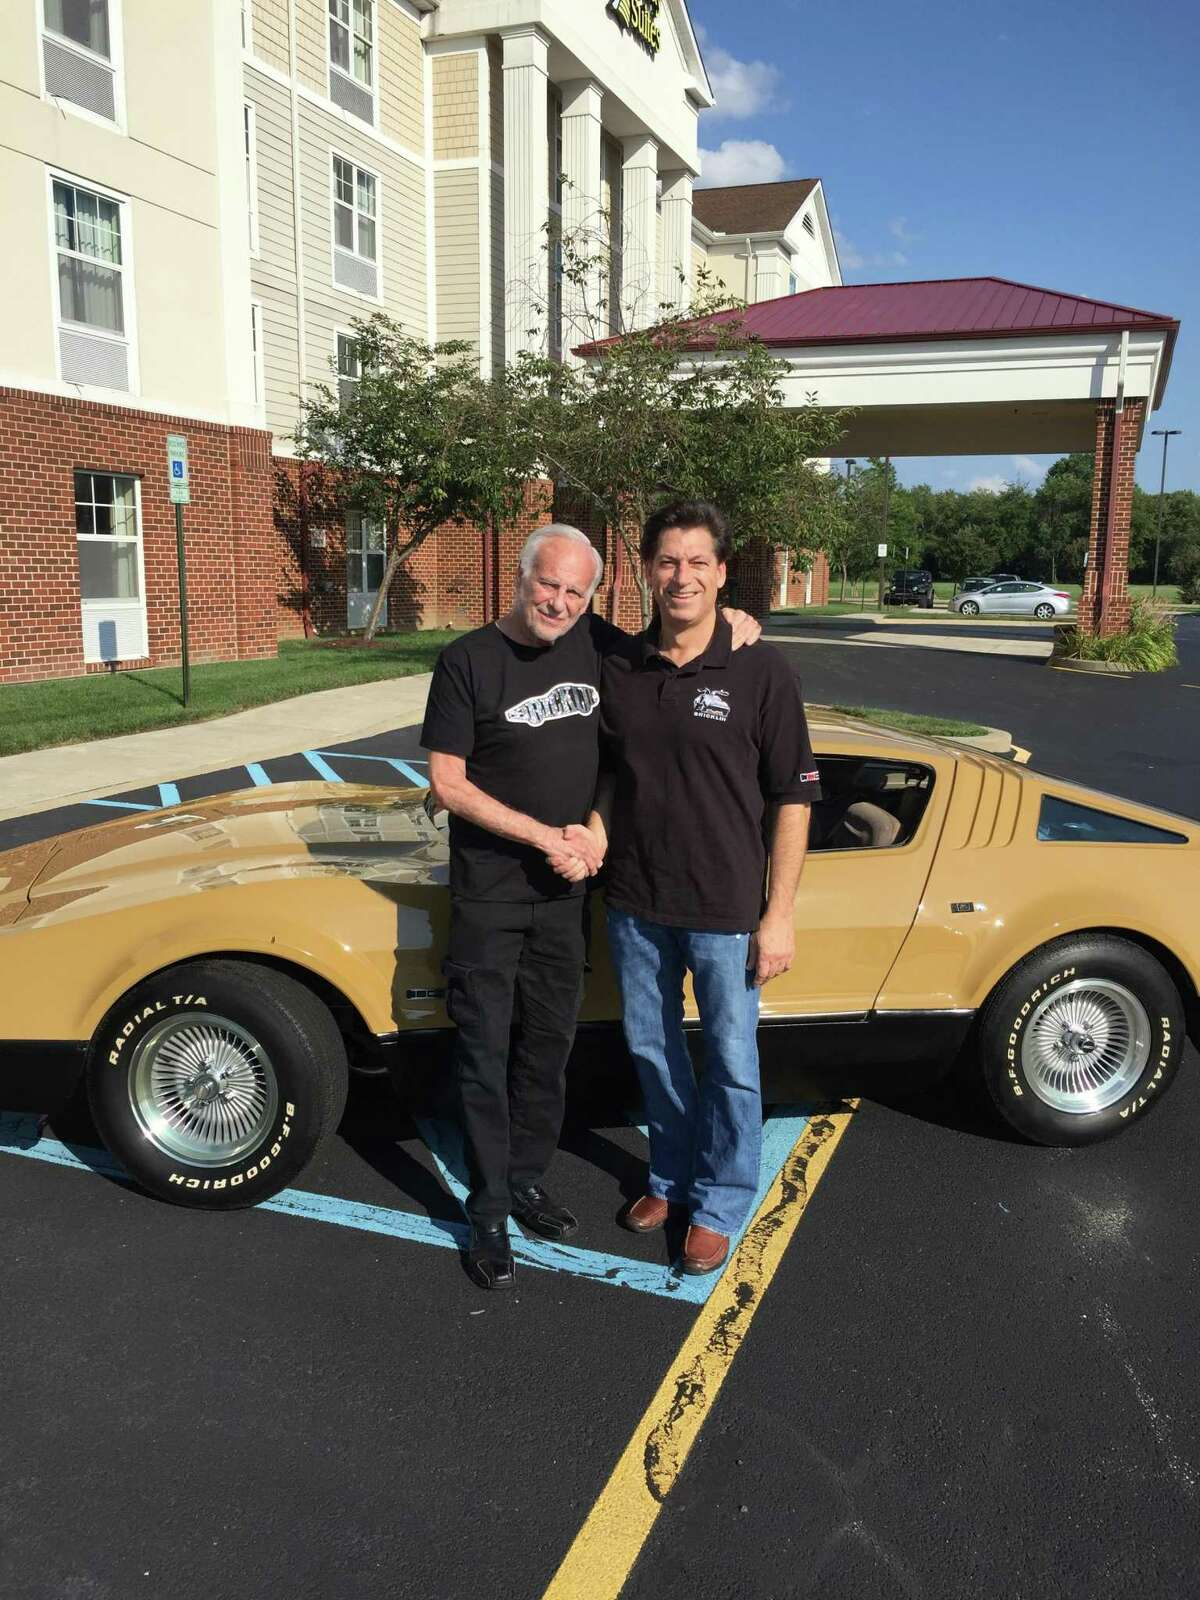 Rick Barone poses with Malcolm Bricklin in front of his 1974 Bricklin SV1 4 speed, believed to be one of only three in existence.